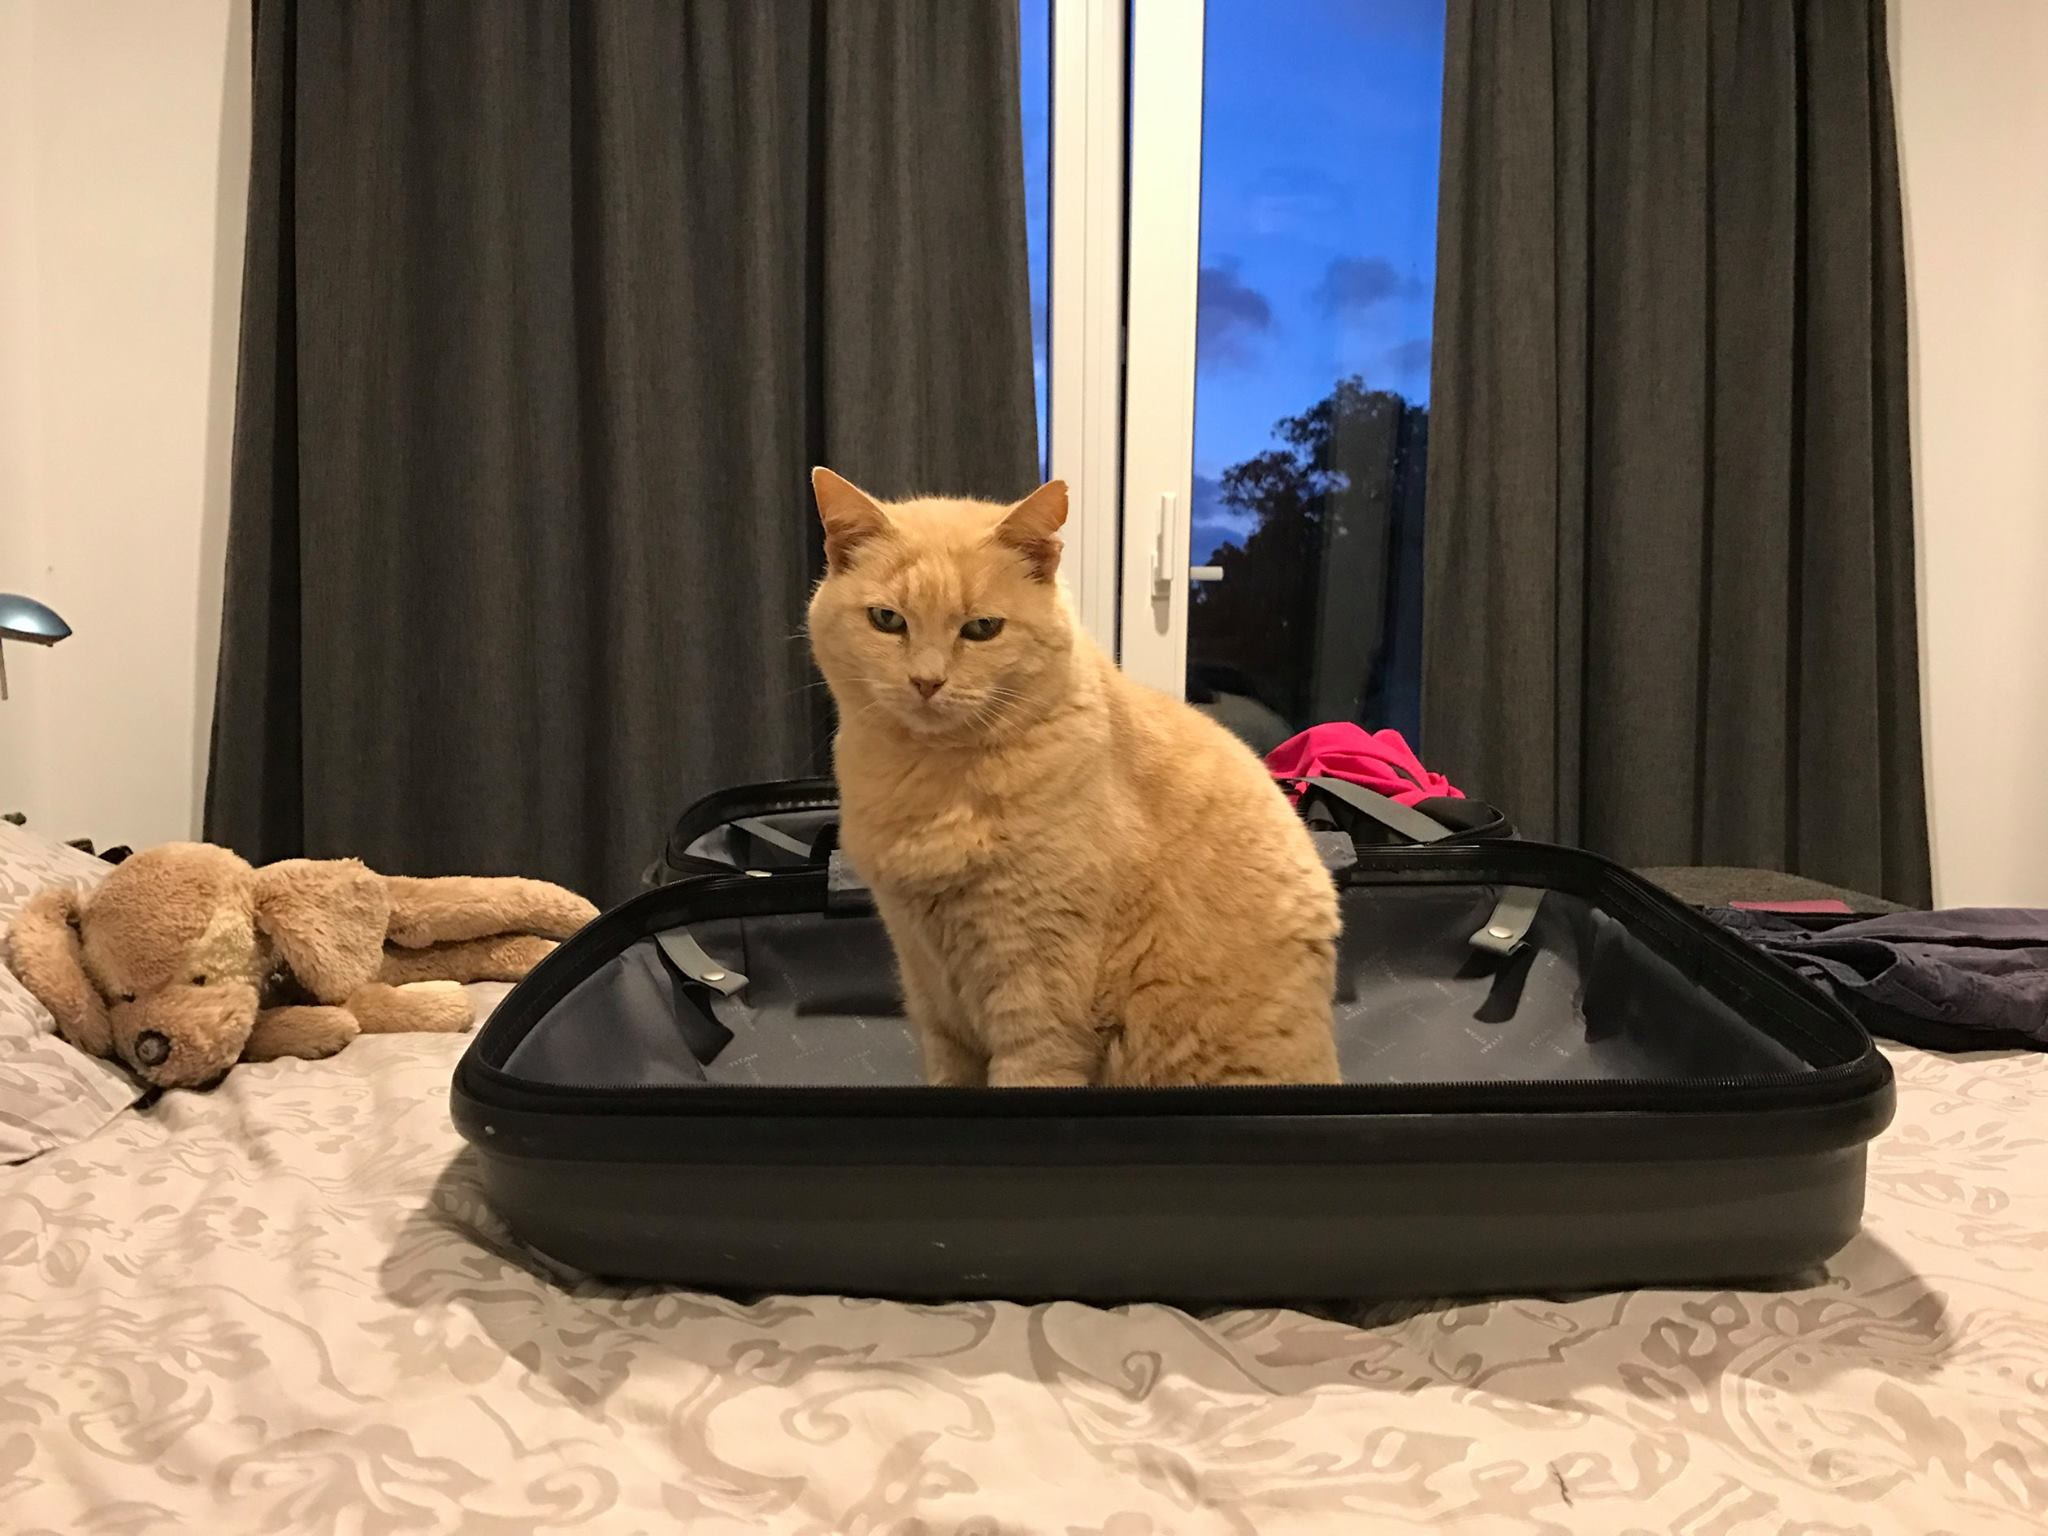 A cream coloured cat sitting in a suitcase on the bed